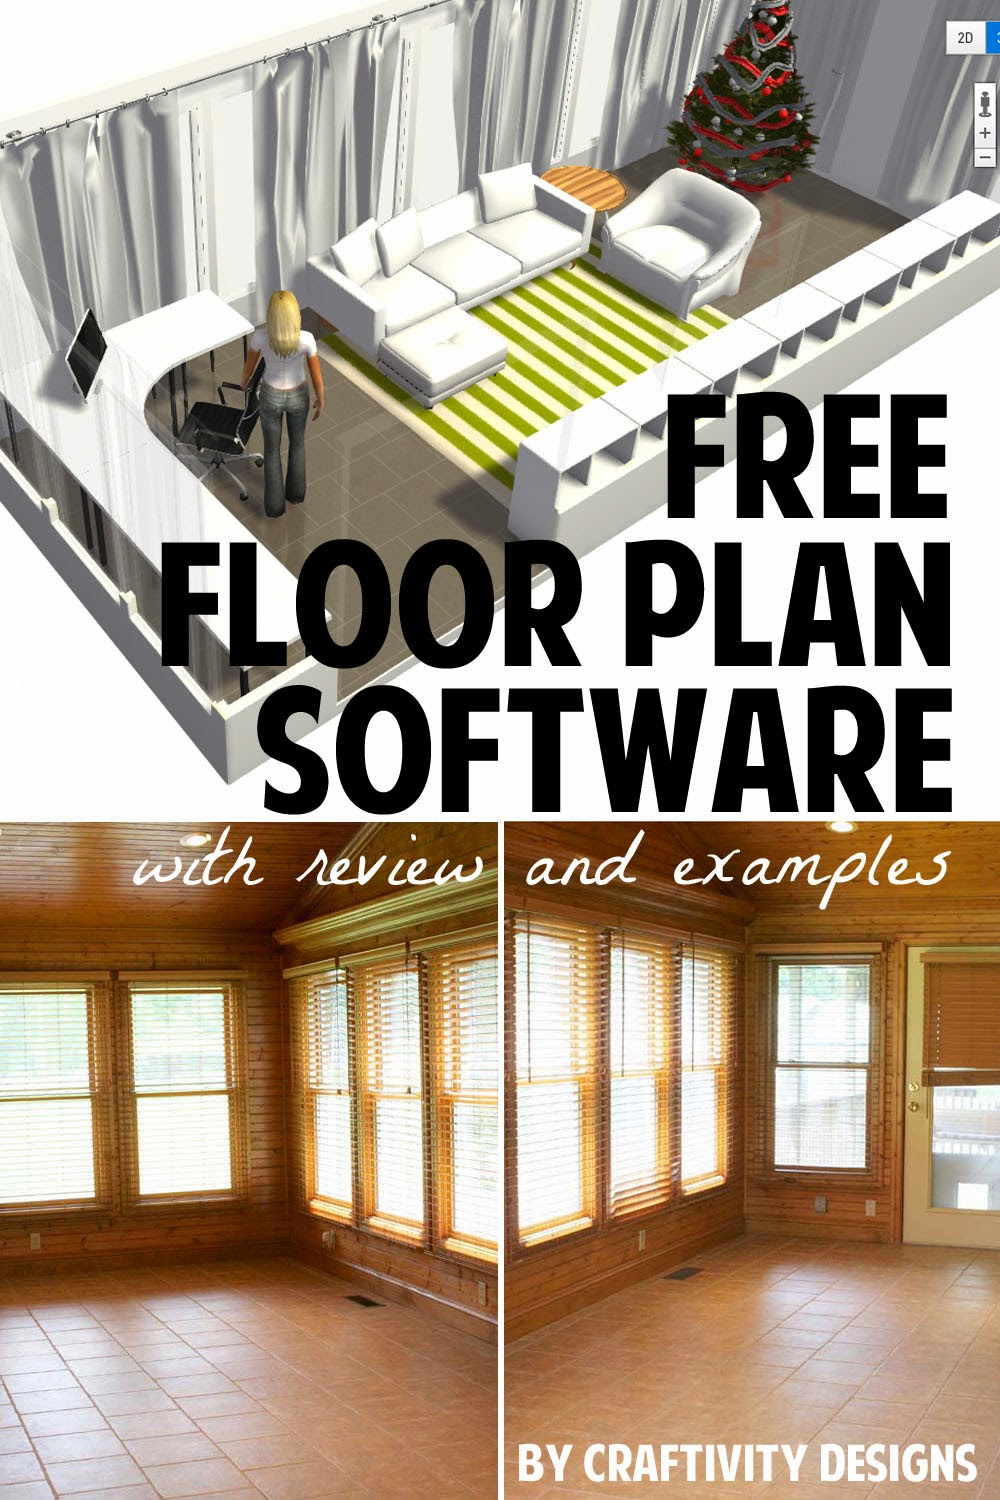 free floor plan software home plan software free examples free software to design and furnish your 3d floor plan